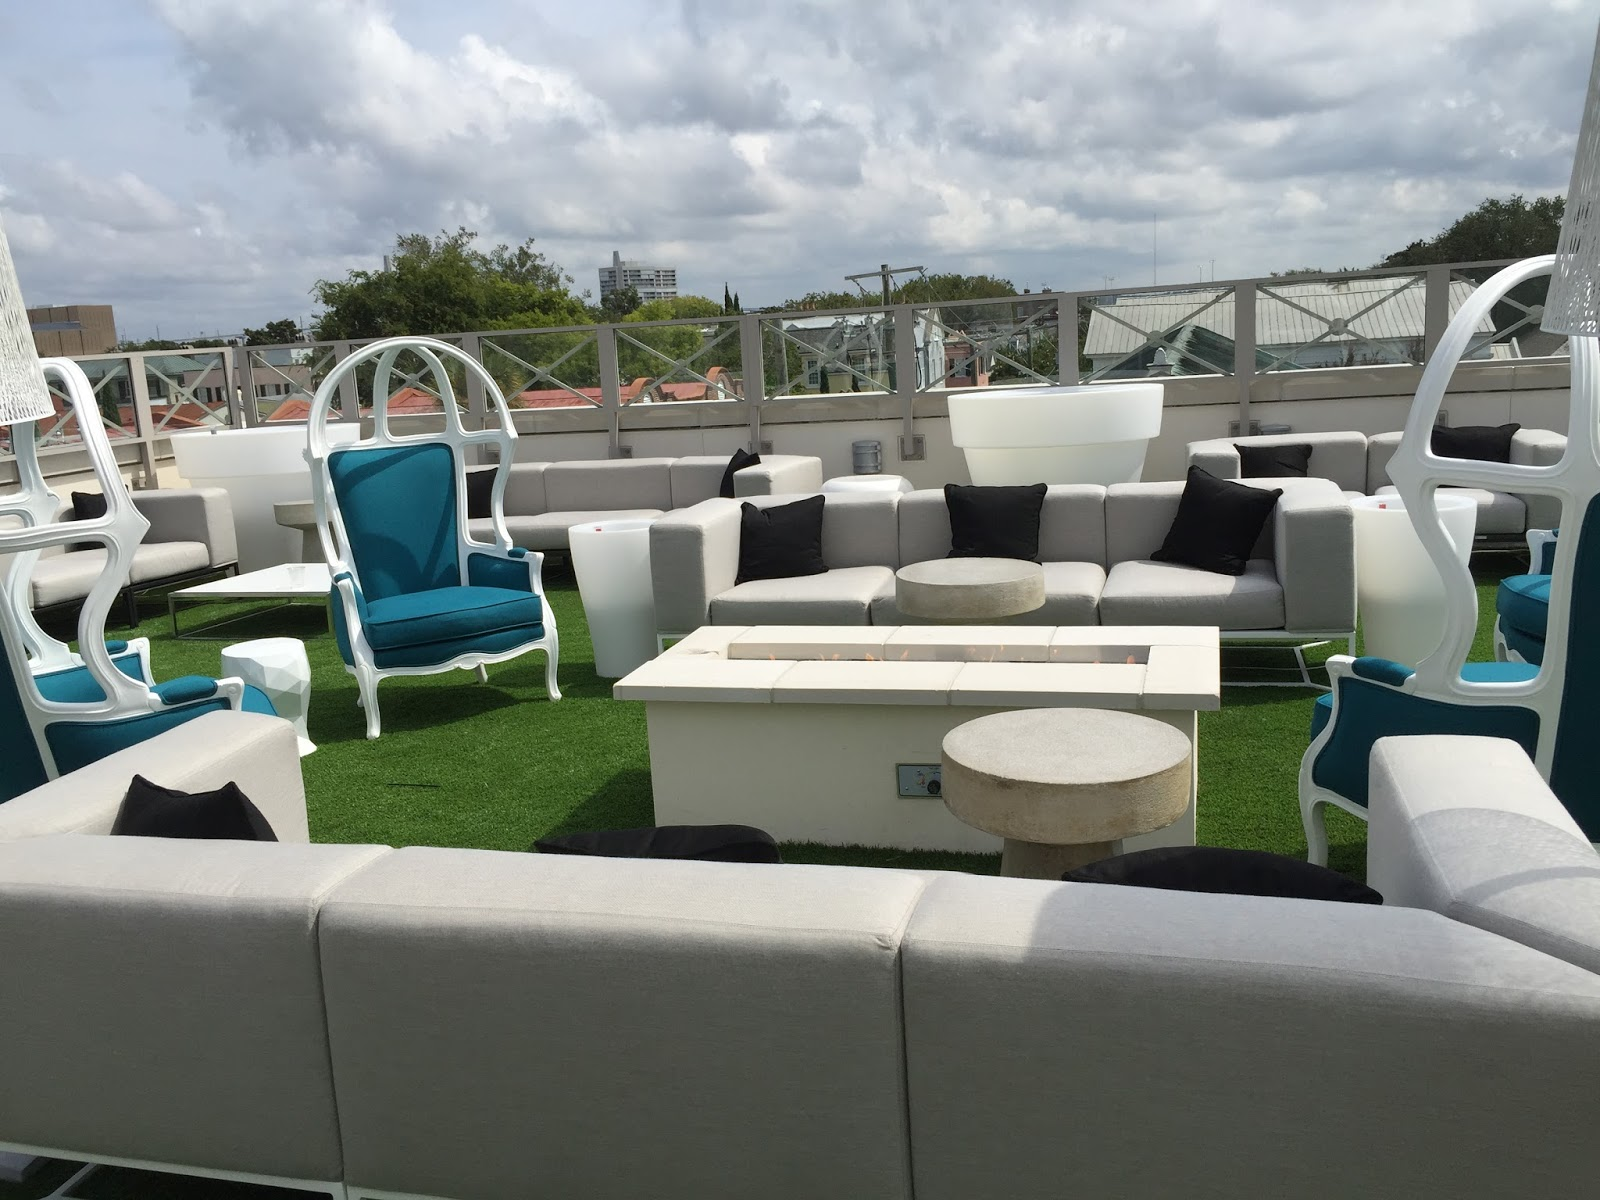 Élevé – rooftop bar charleston